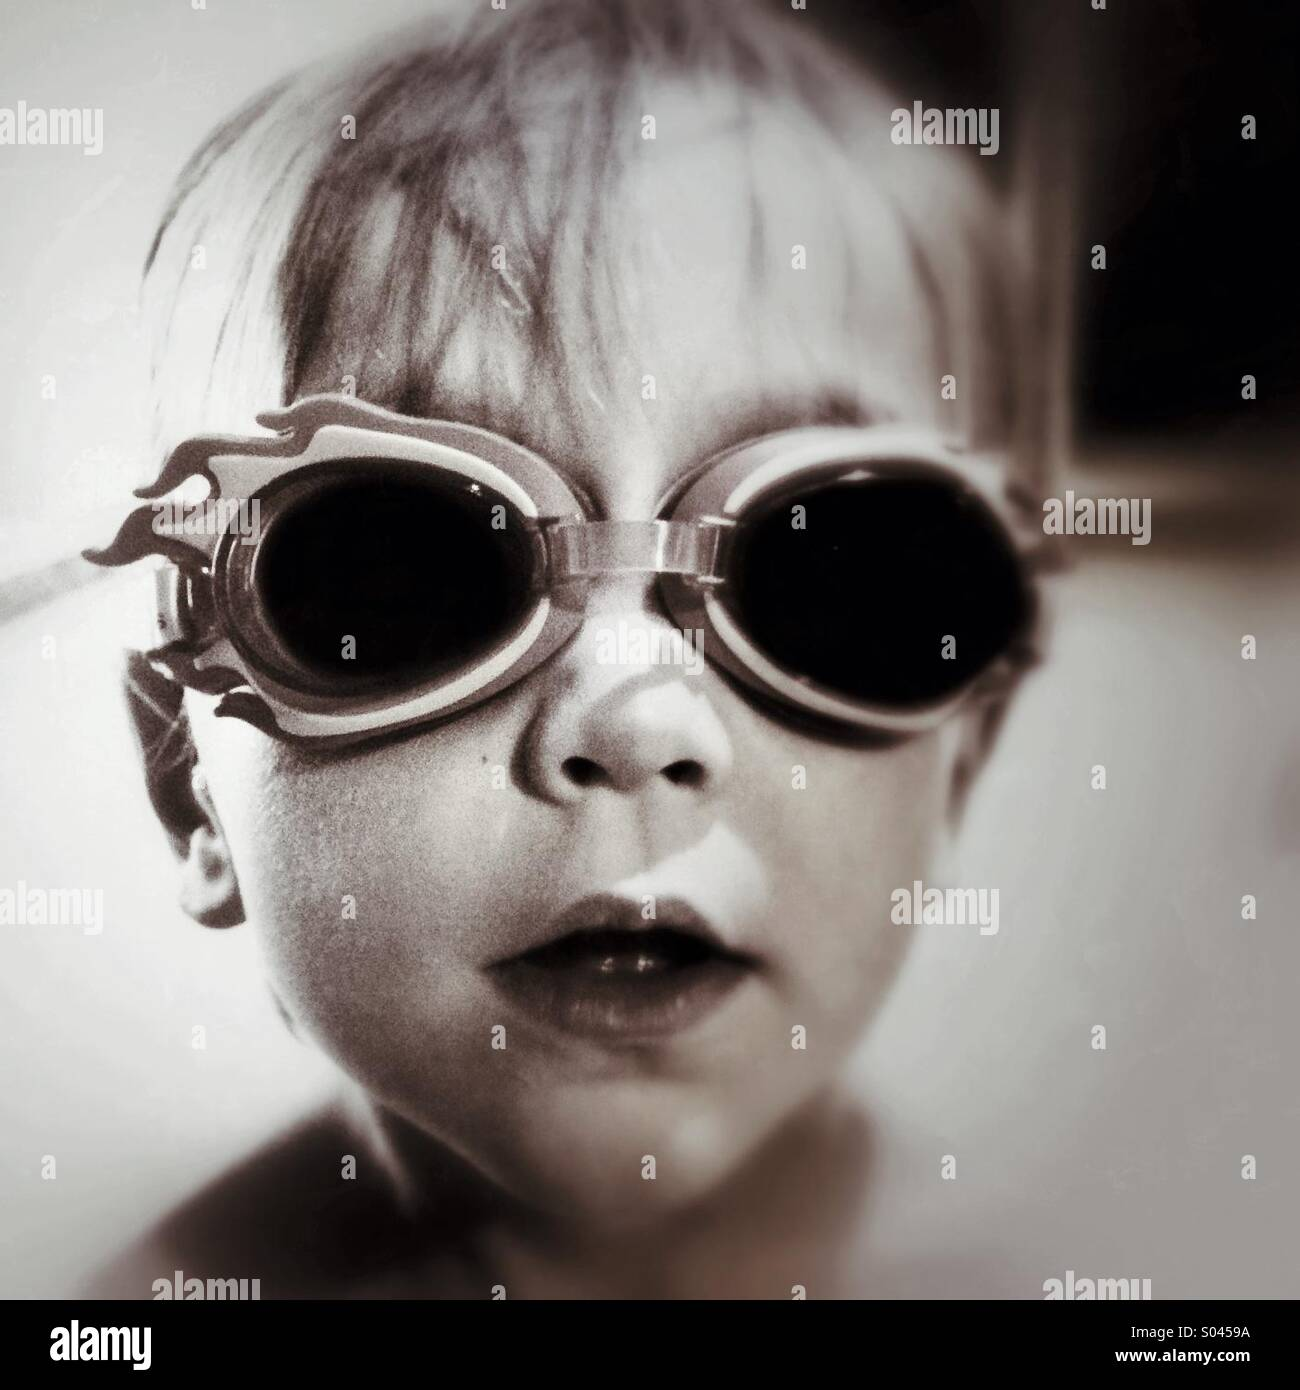 Boy wearing swimming goggles - Stock Image